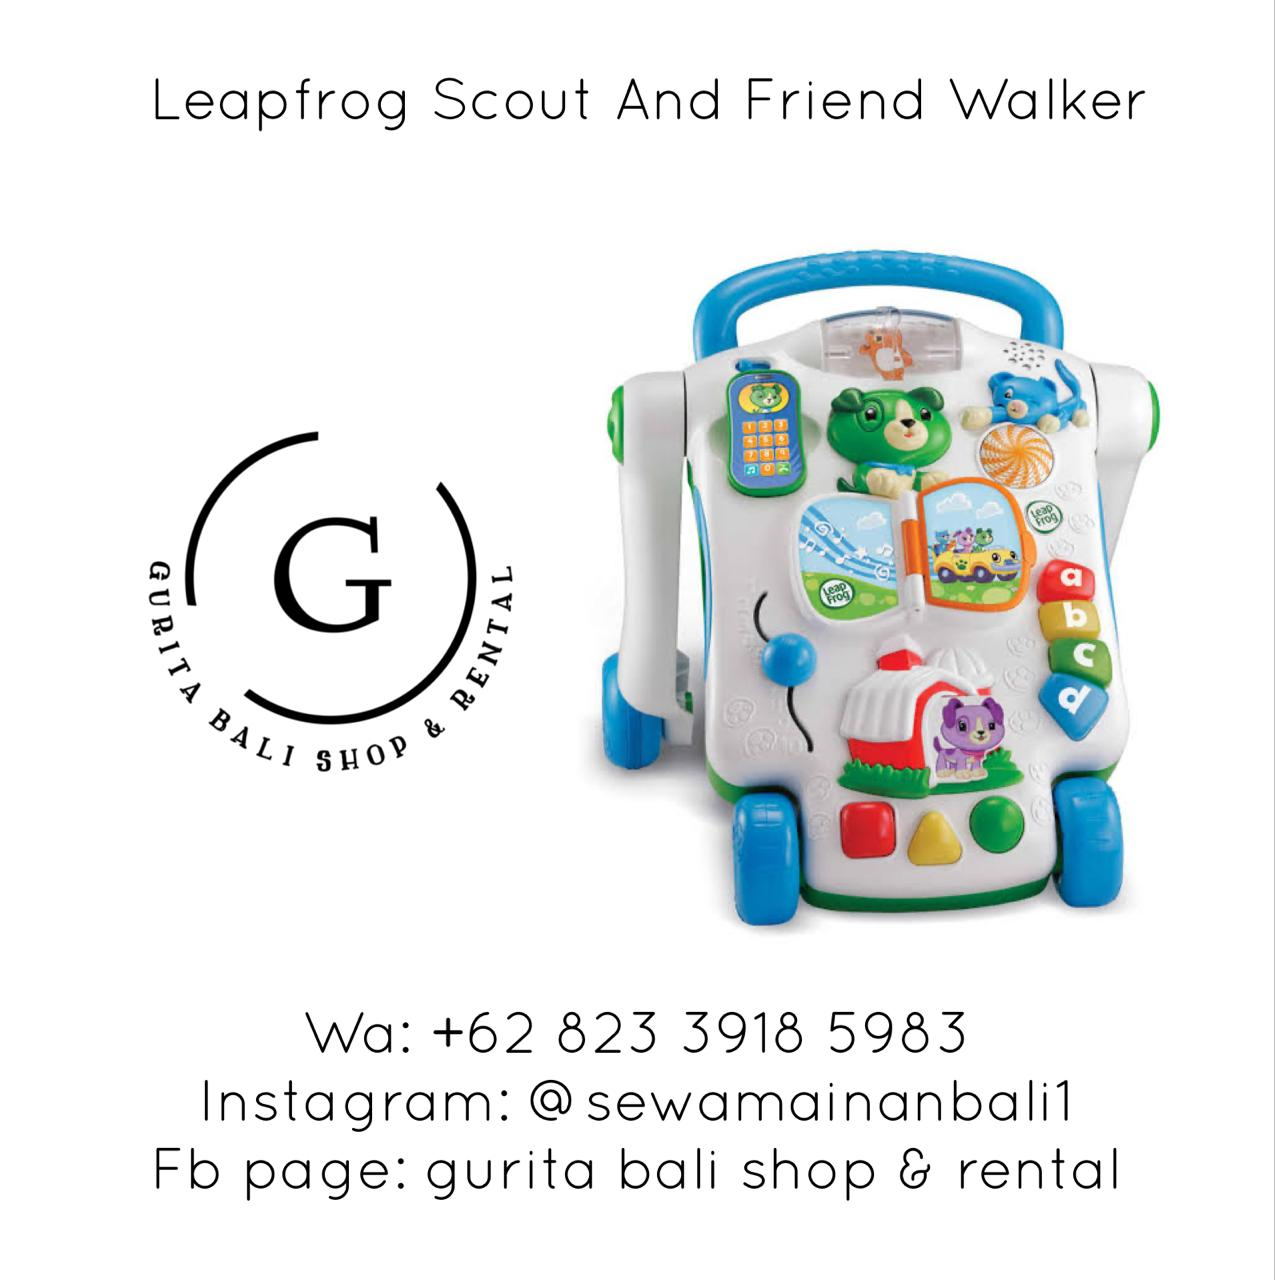 LEAP FROG SCOUT AND FRIEND WALKER